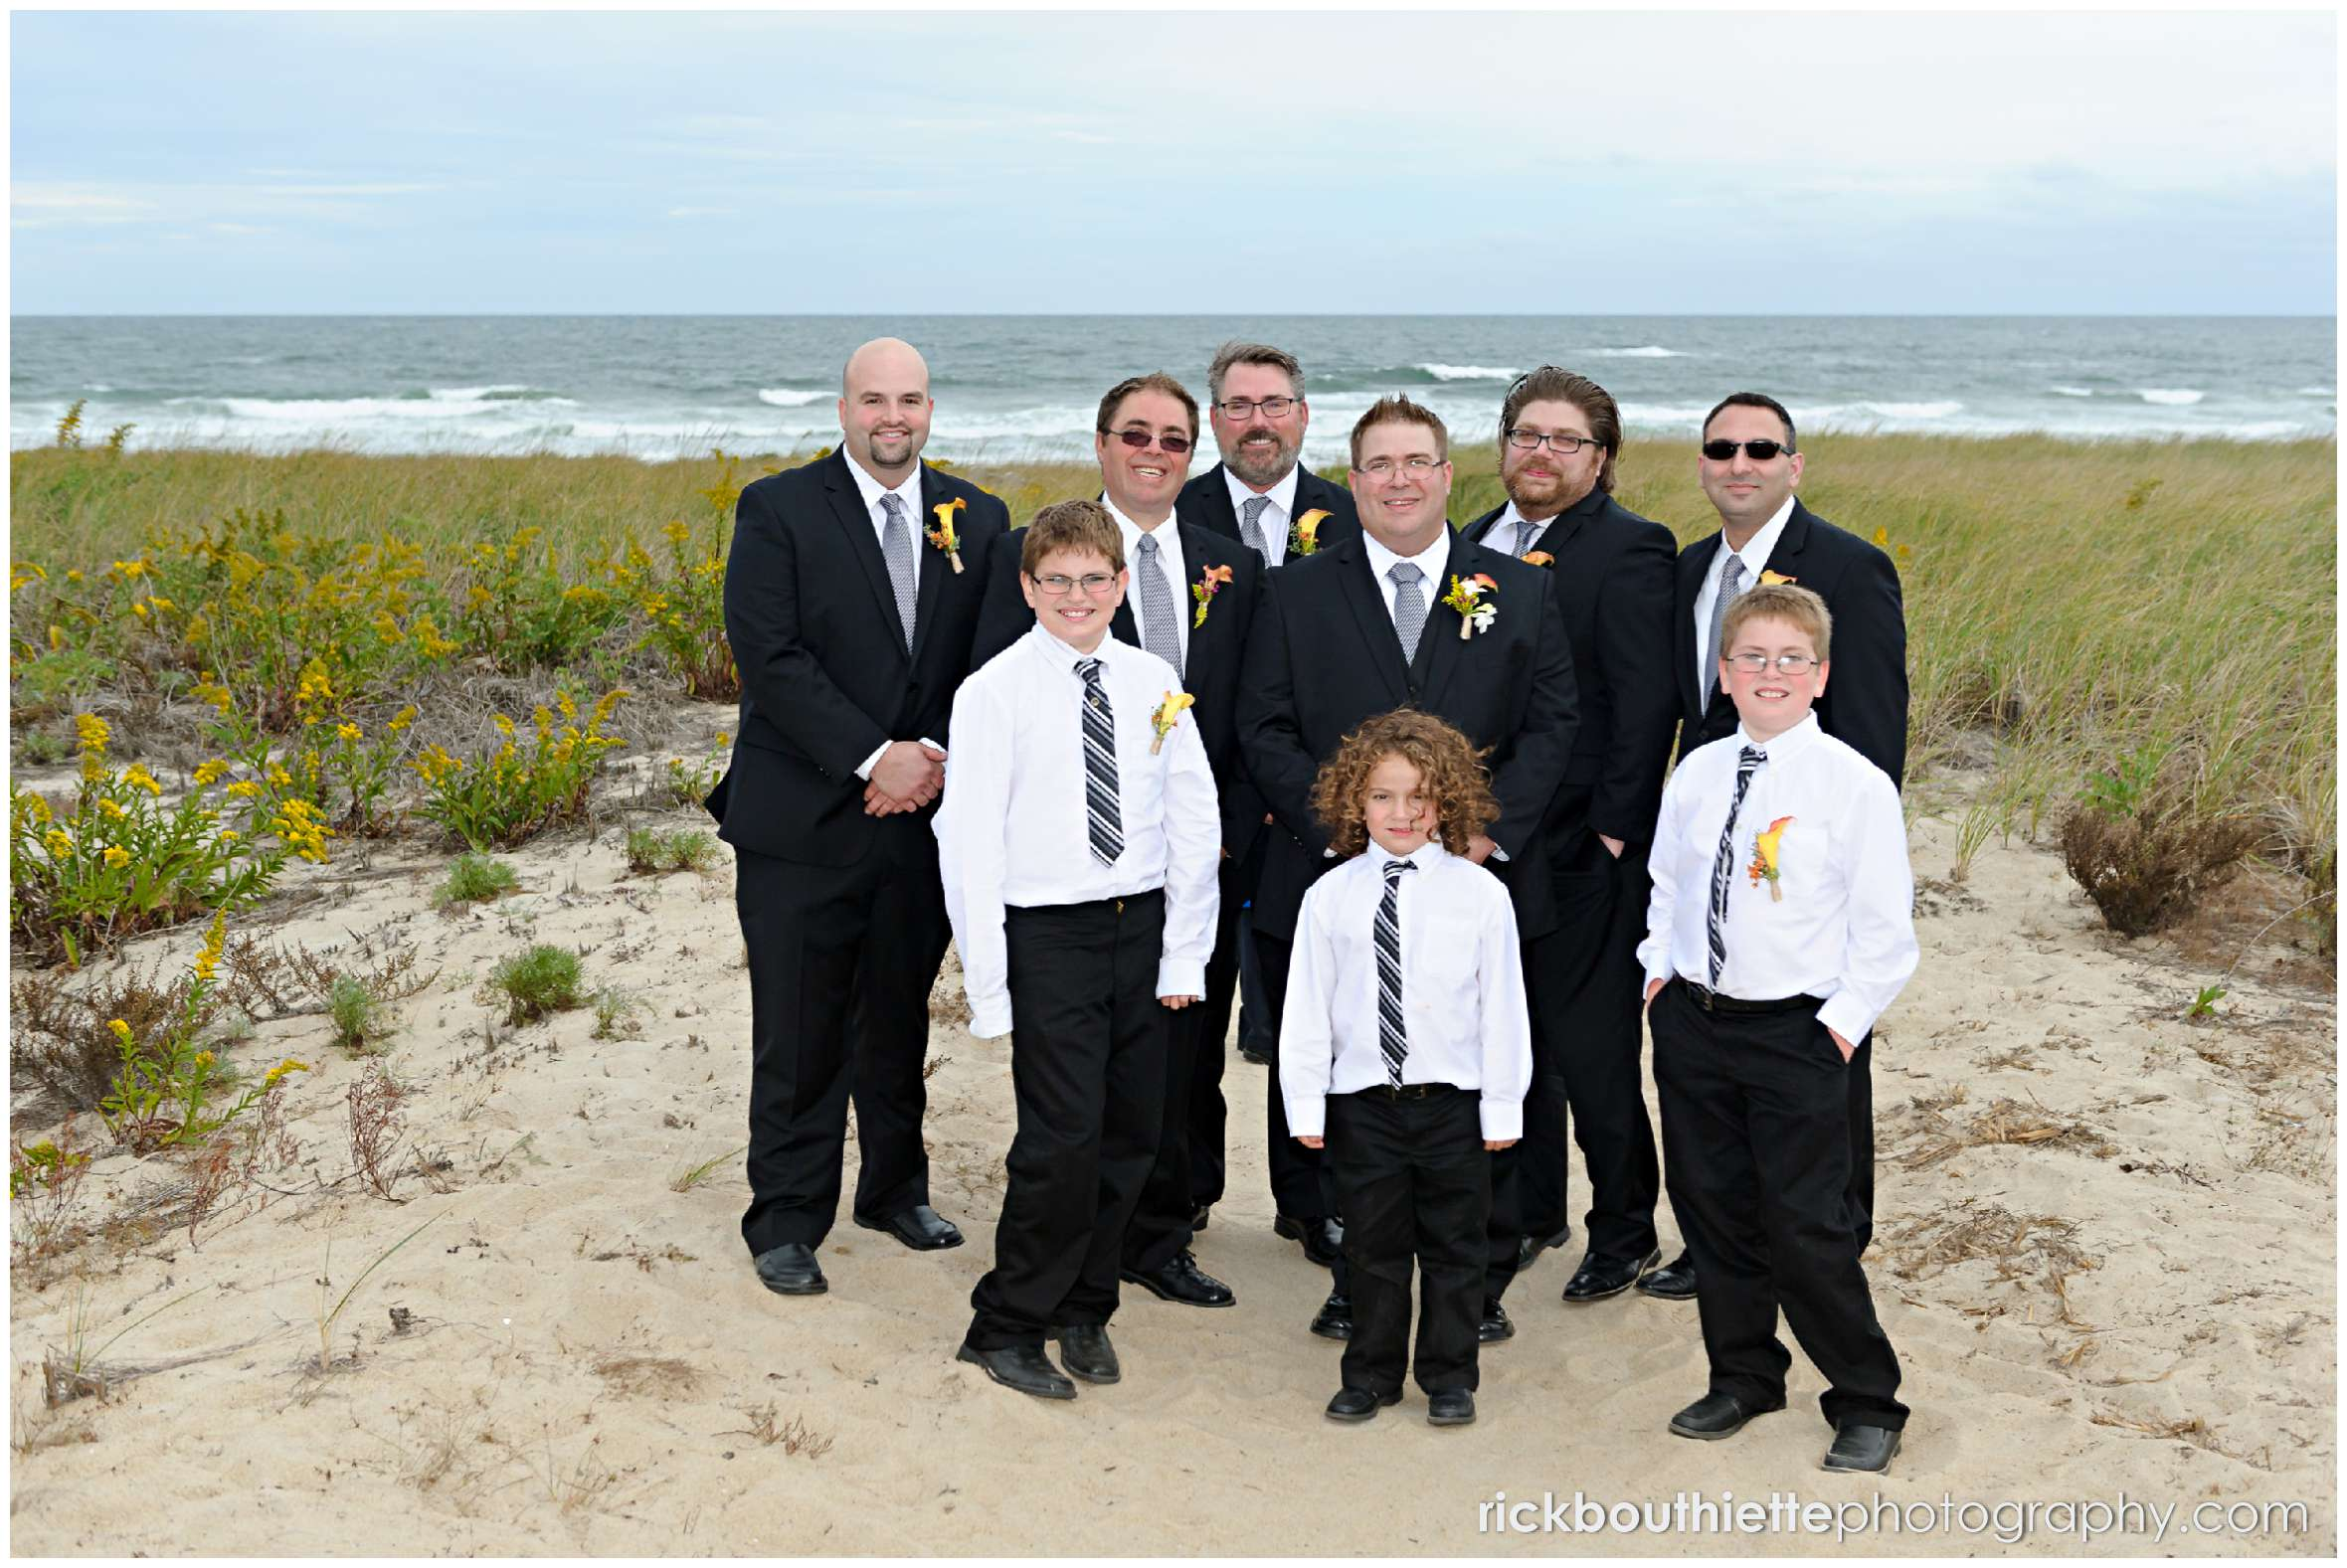 groom and groomsmen on beach after Seabrook NH seacoast wedding